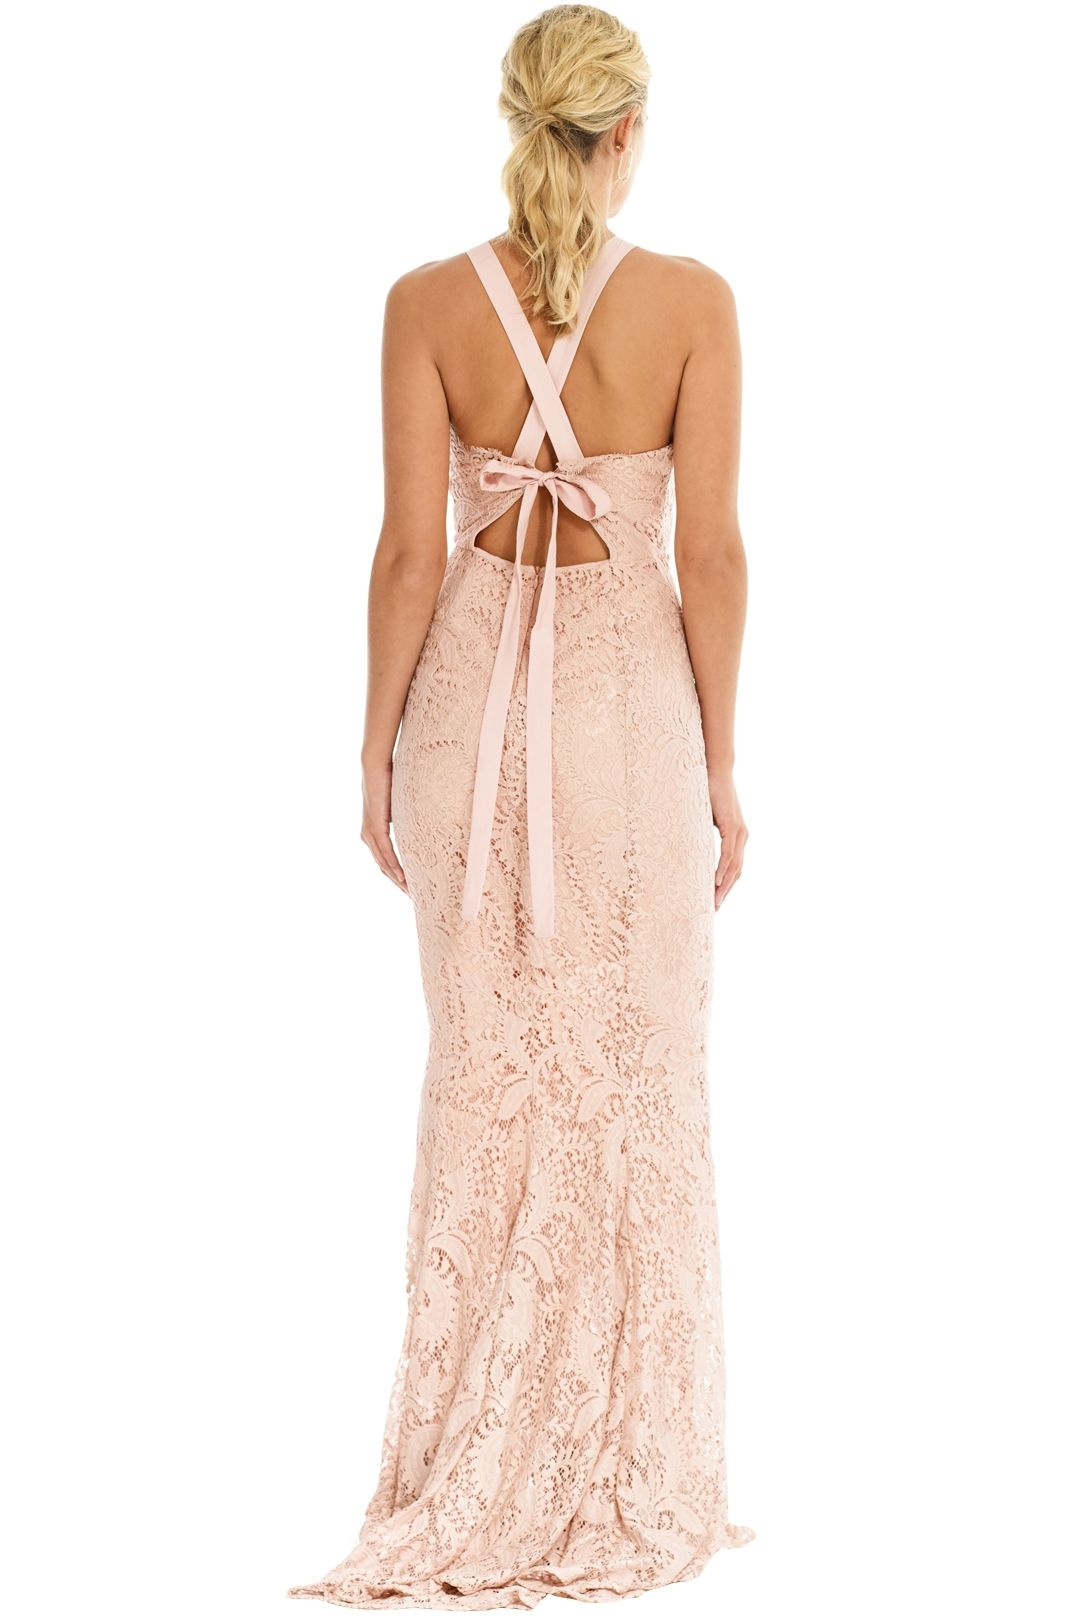 Grace and Hart - Mystic Lace Cross Back Gown - Blush - Back